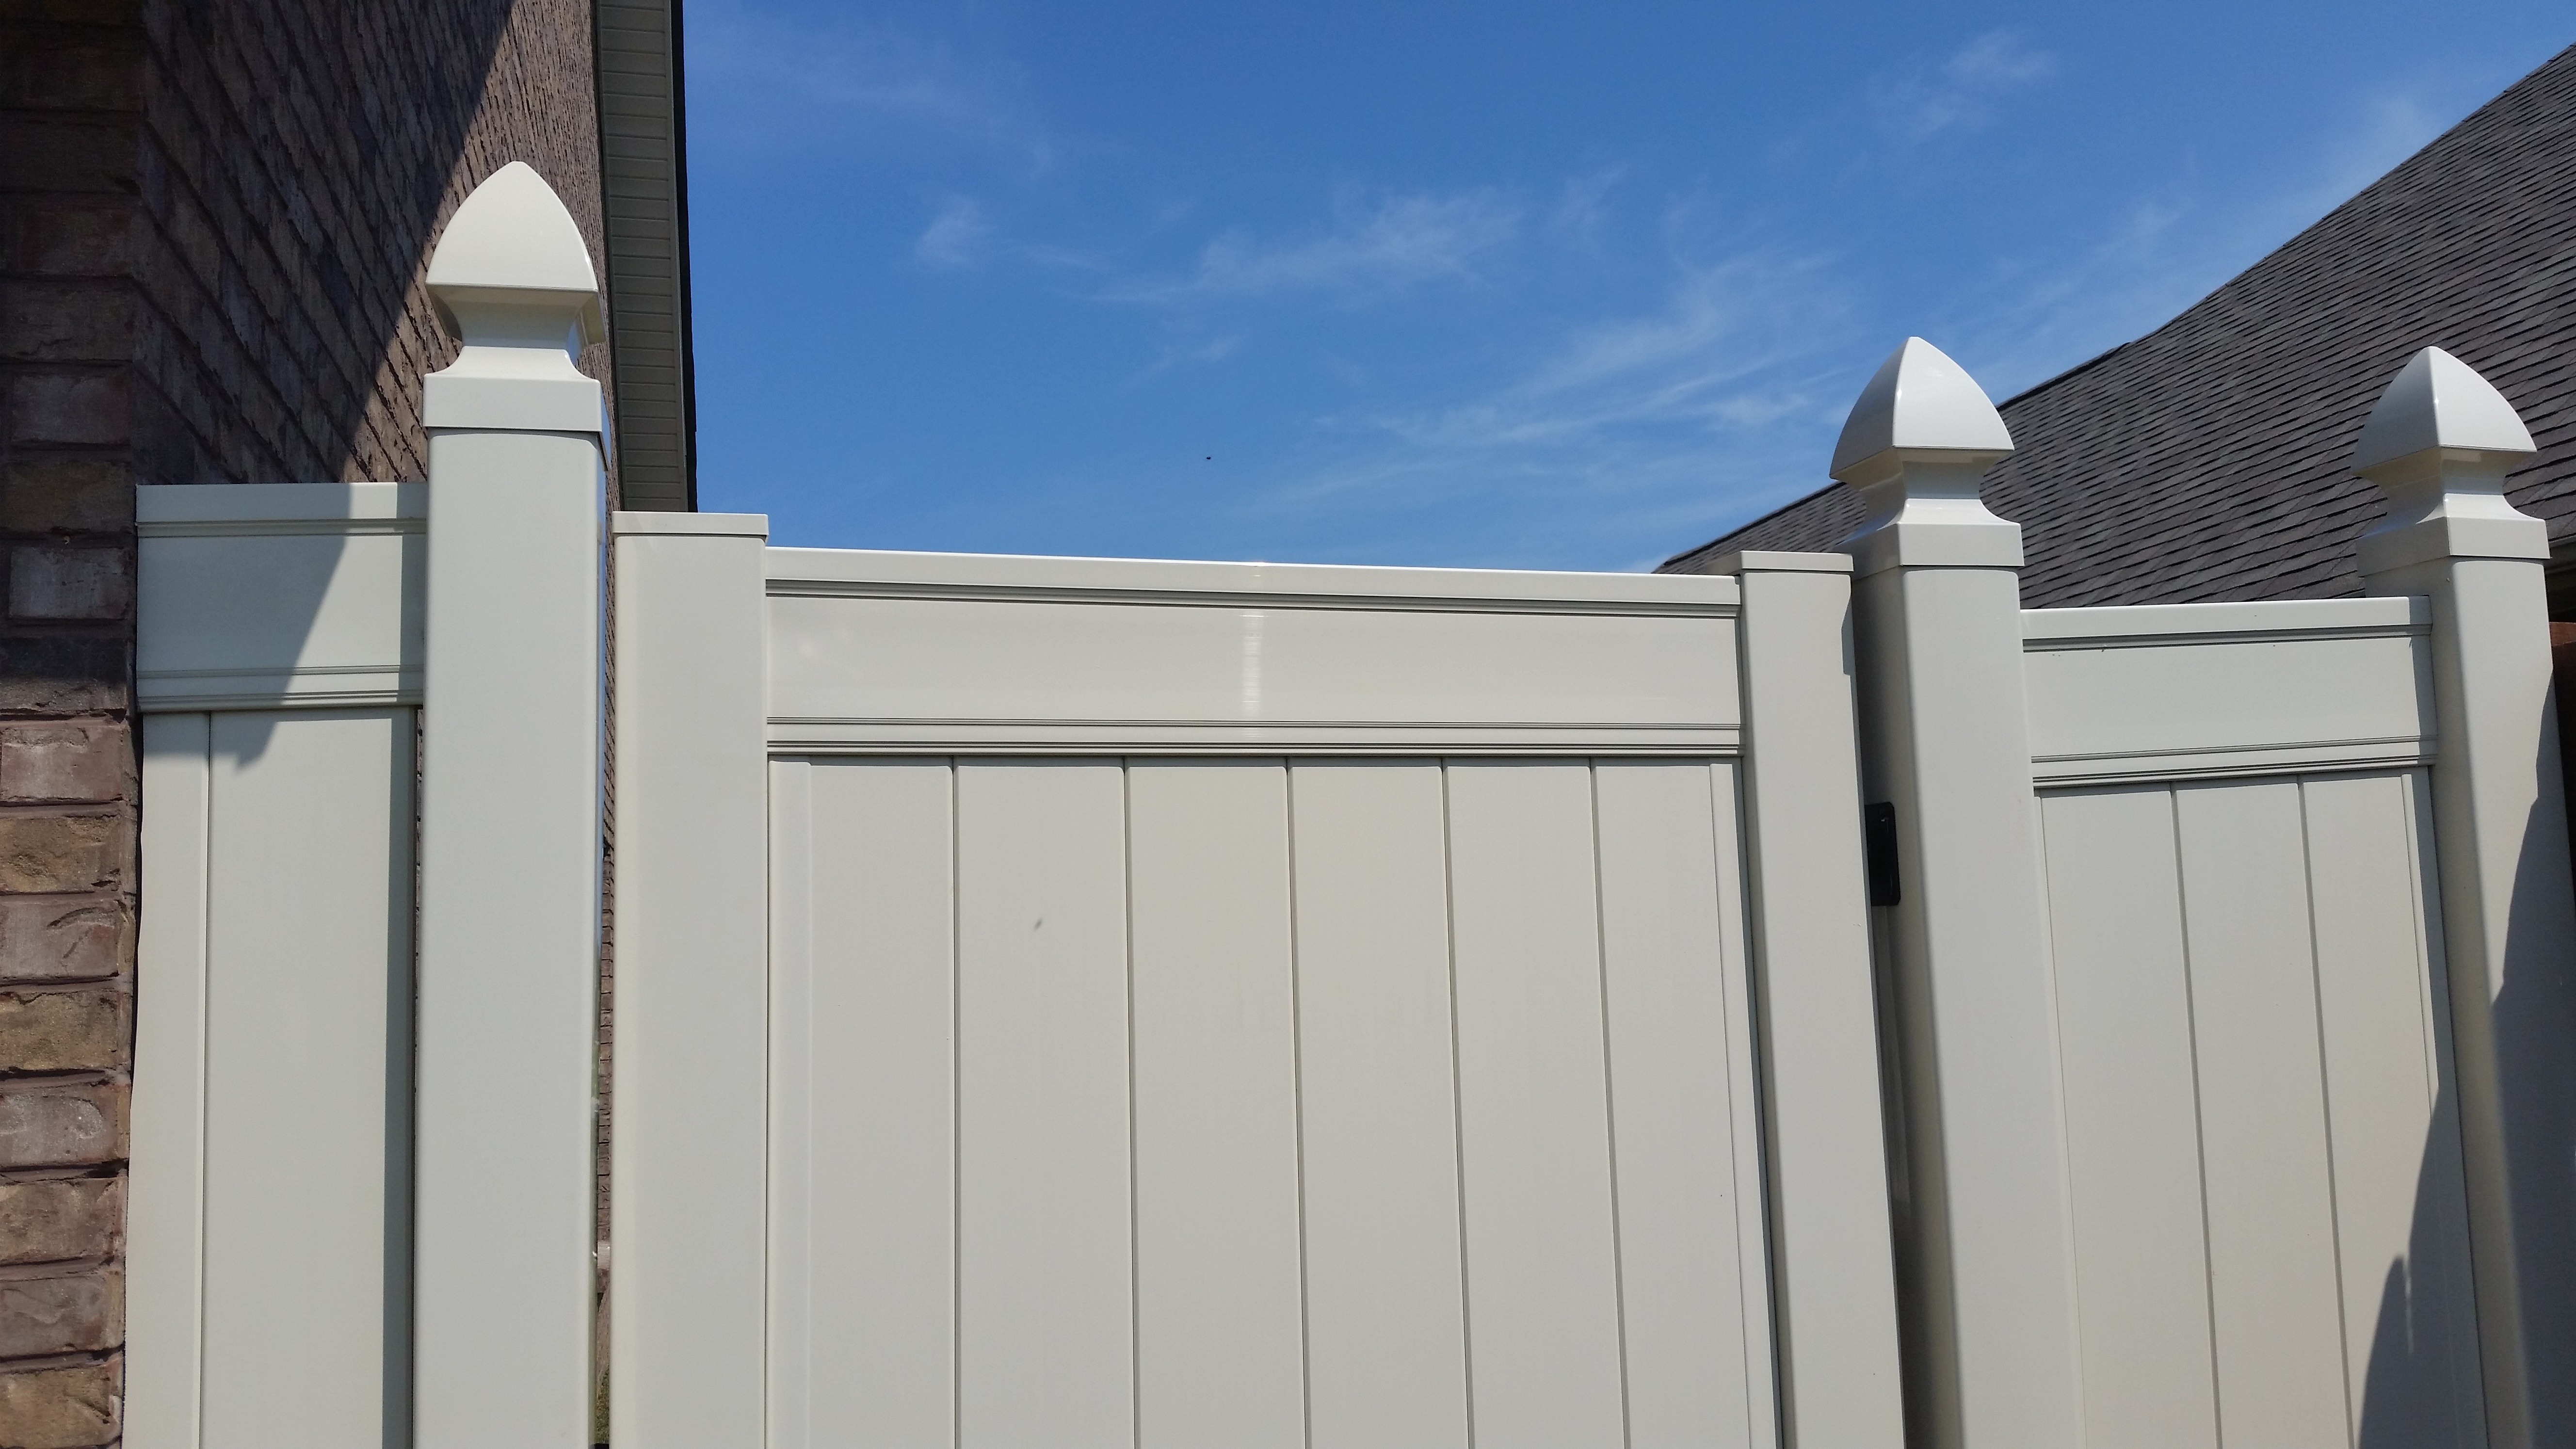 Lowe S Installation : Top reviews of lowe s installation services